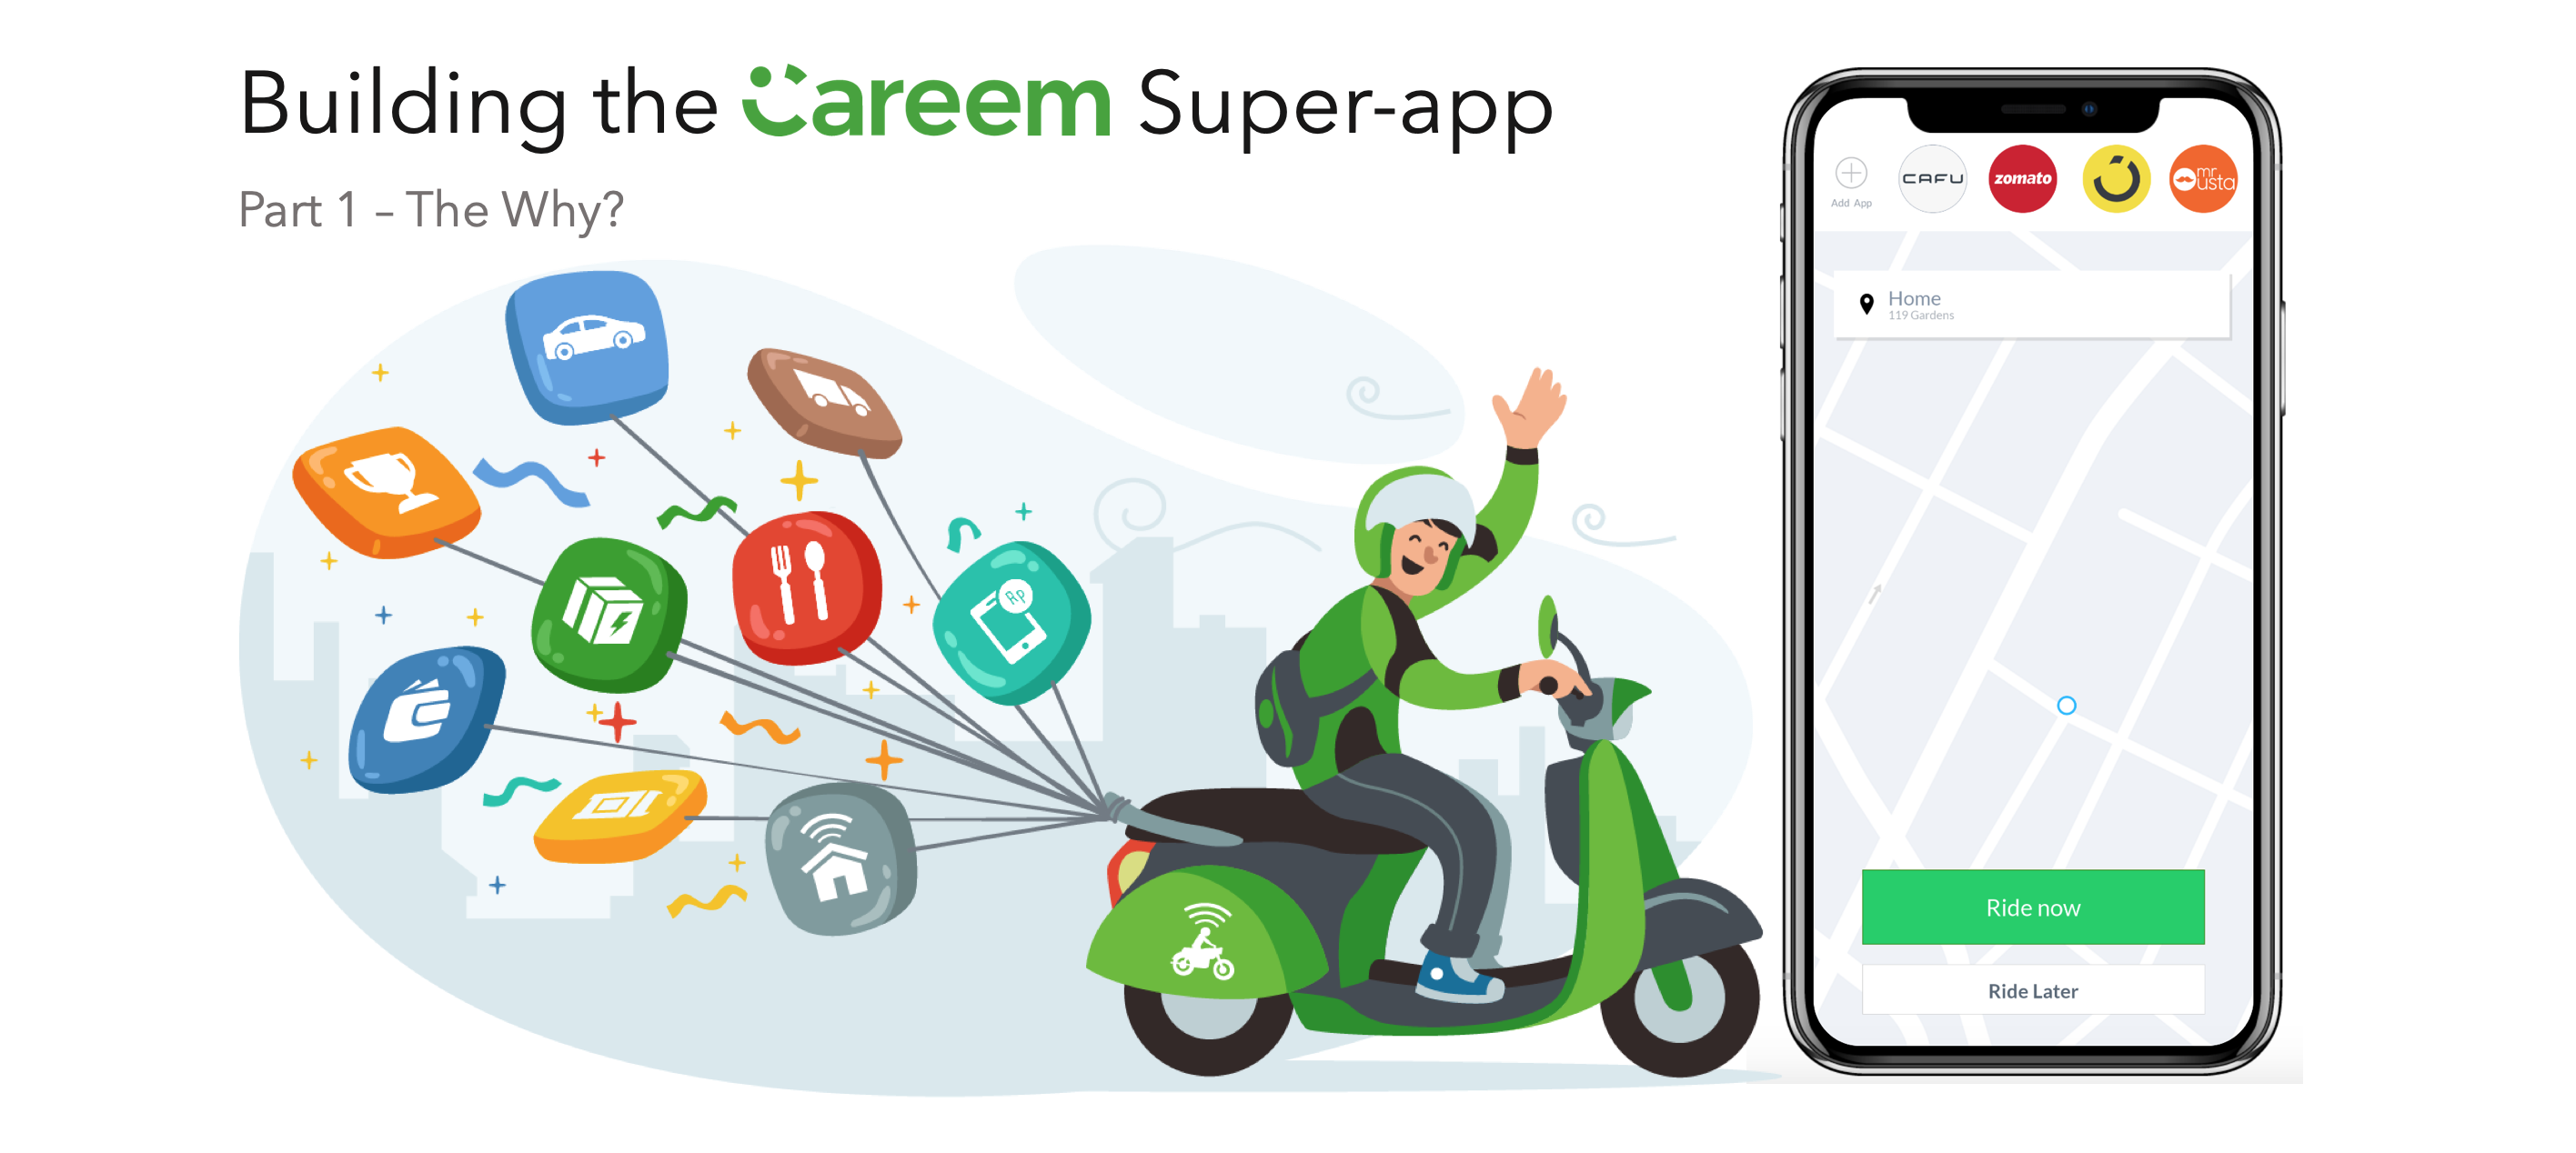 Building a Careem Super-app — Part 1 12